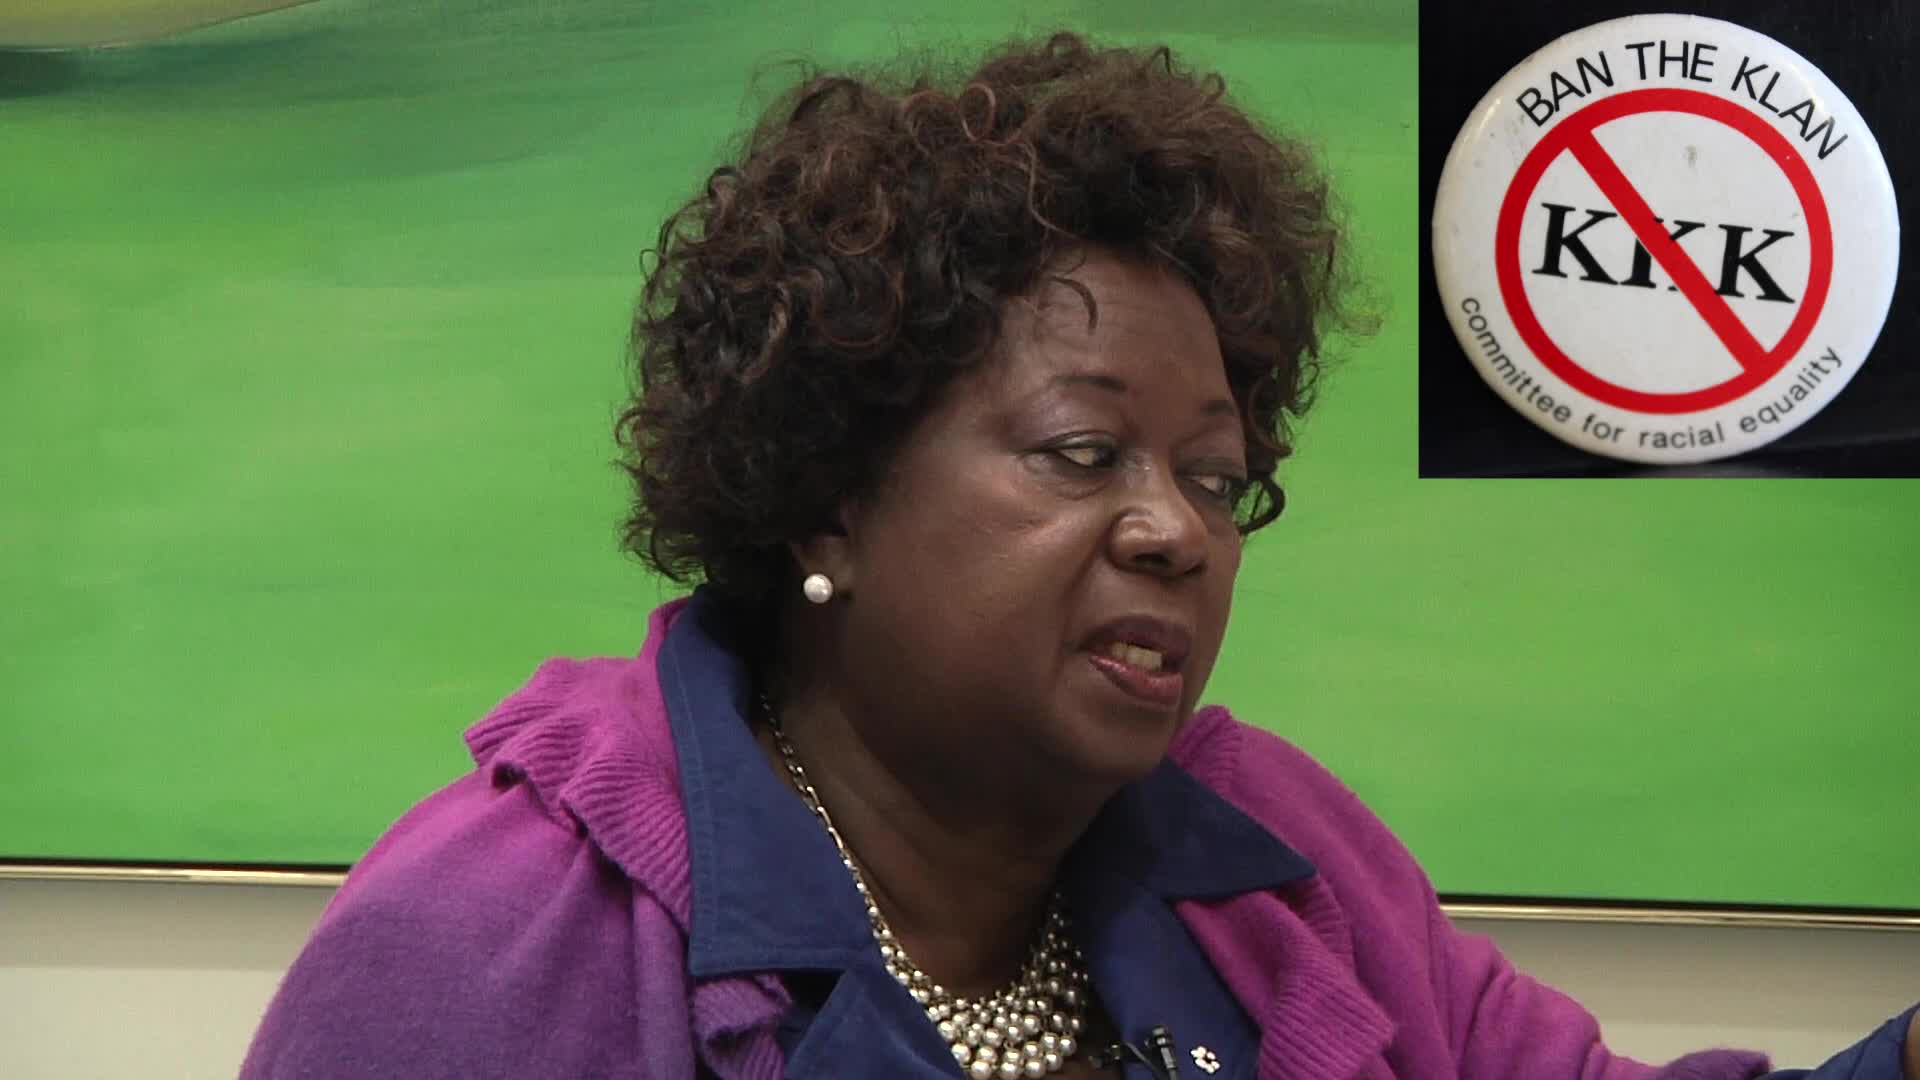 Jean Augustine interview: Ban the KKK button